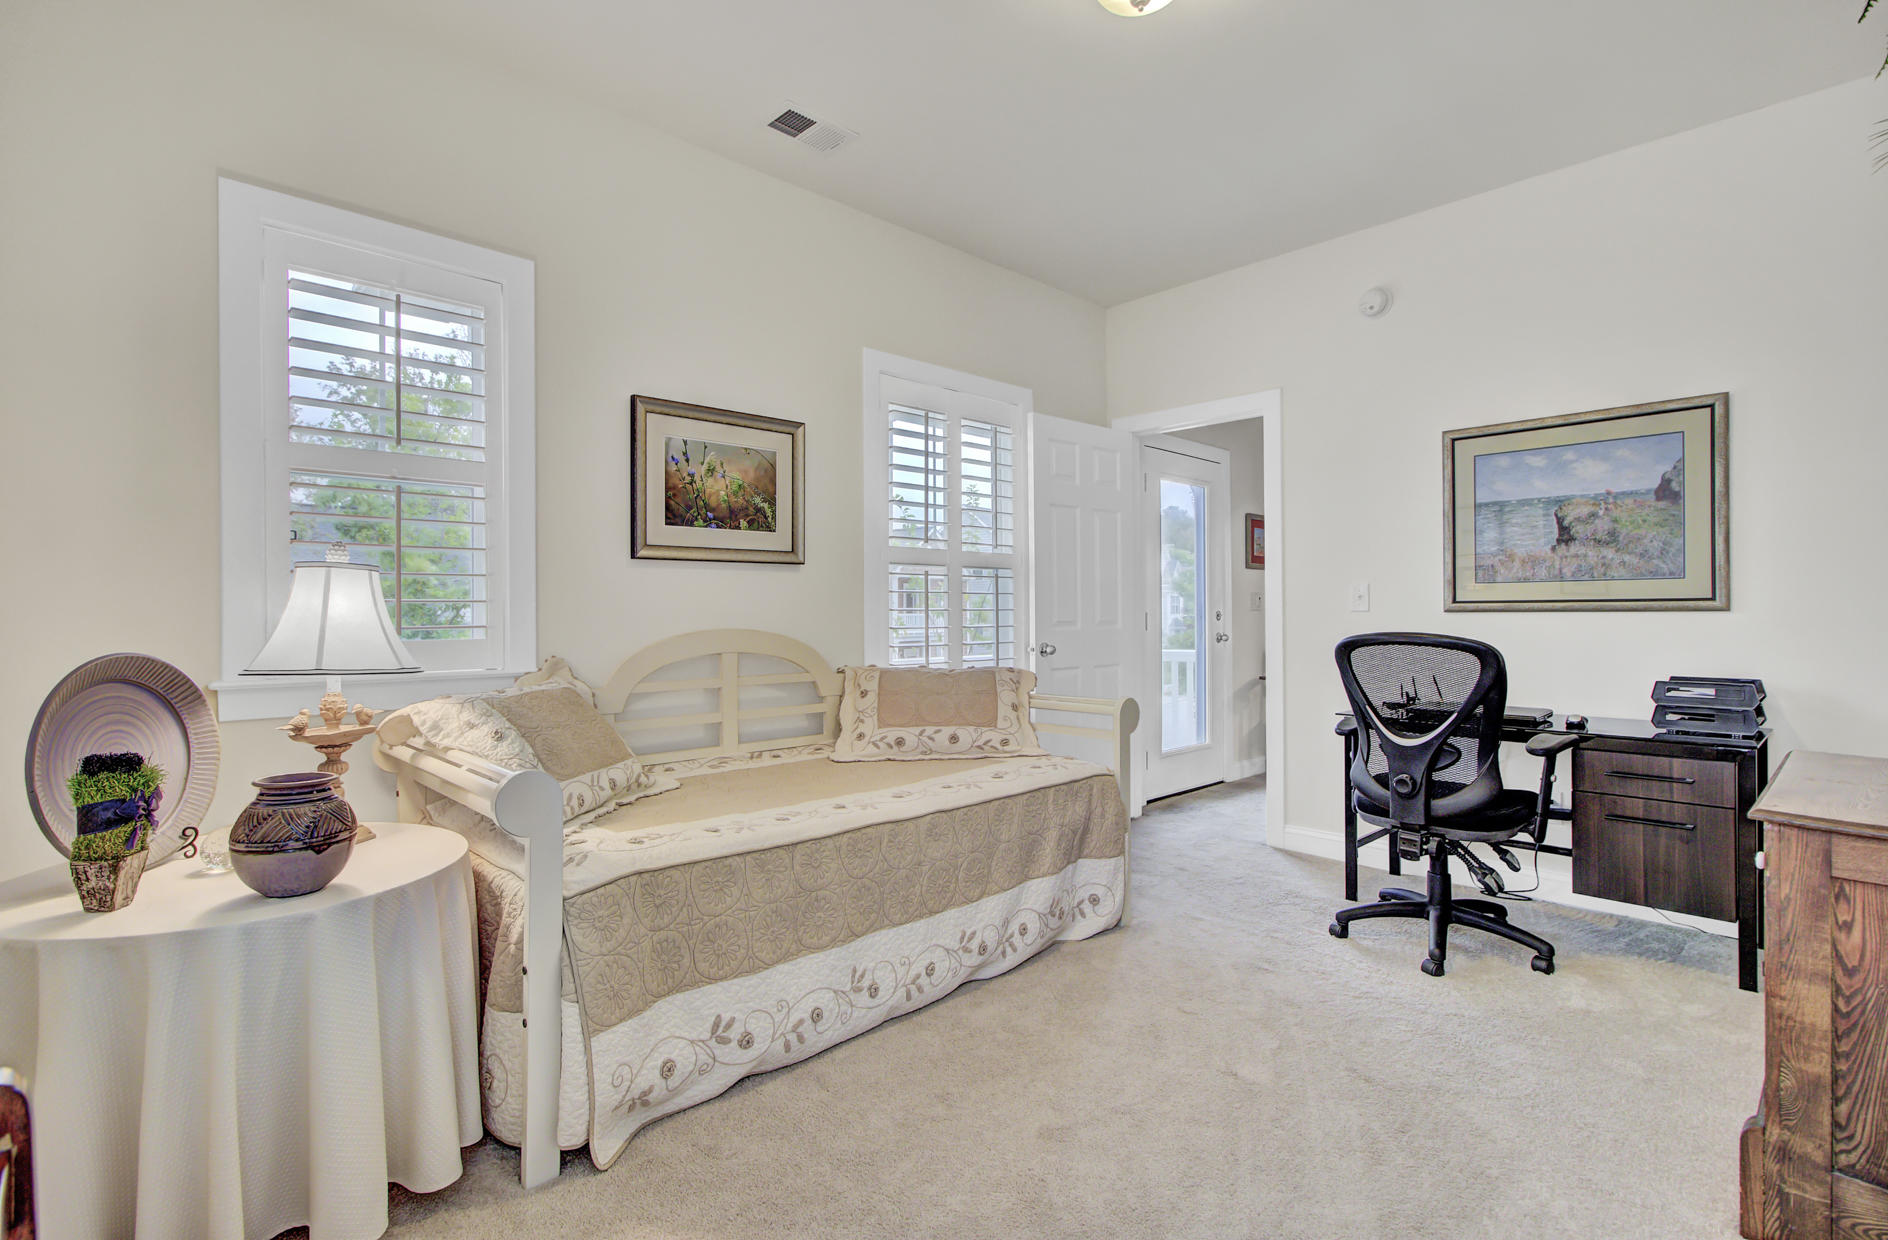 Boltons Landing Homes For Sale - 3034 Scuba, Charleston, SC - 6